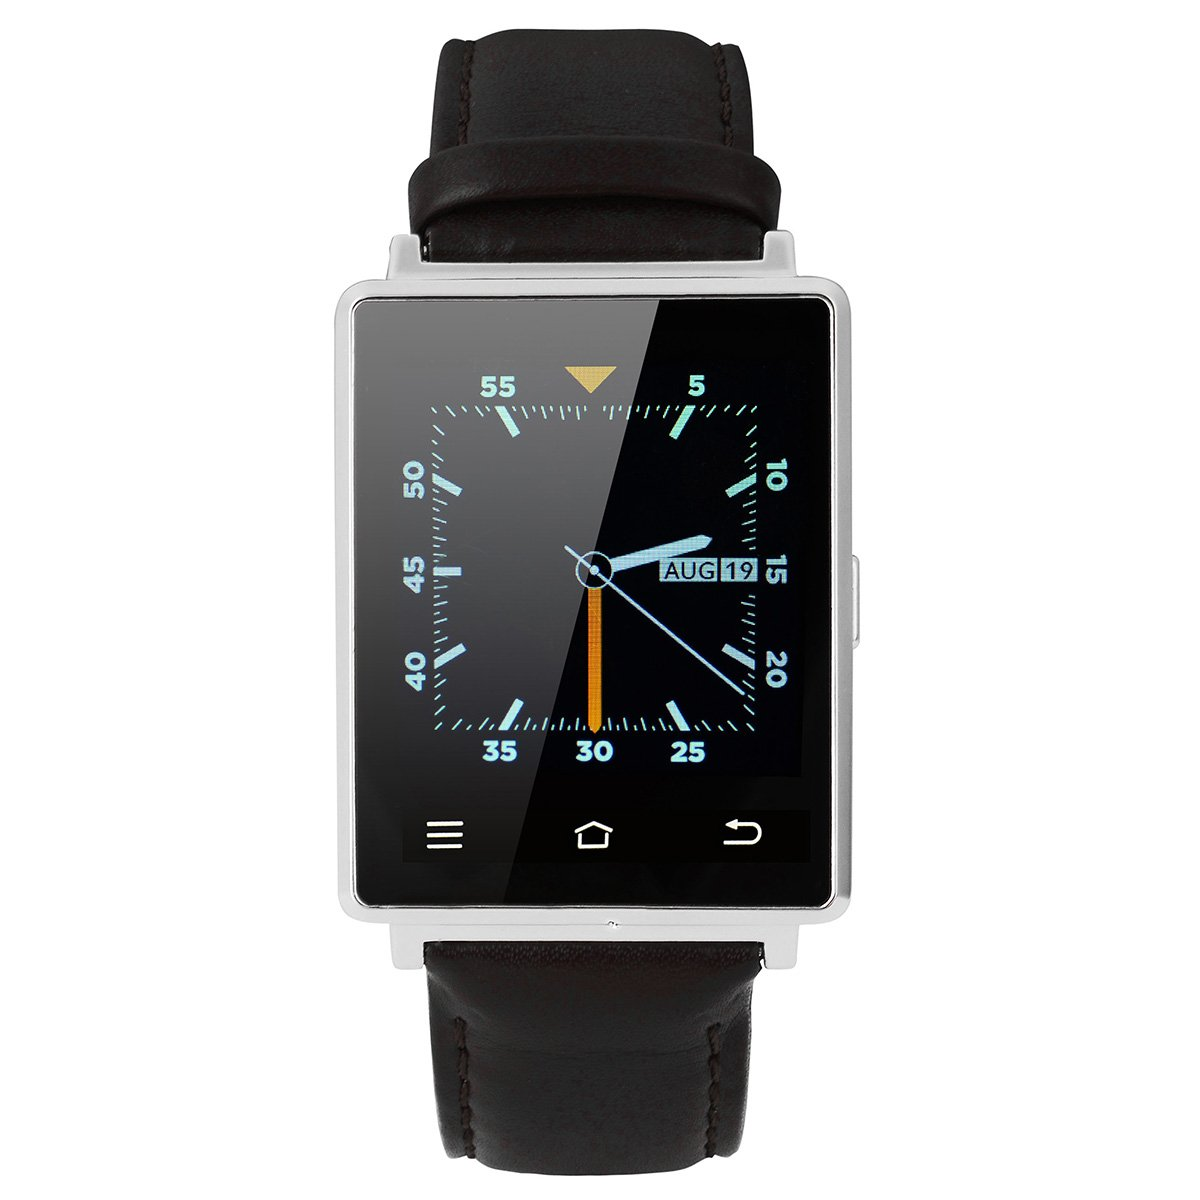 Smartwatch Phone -Silver Android Smartwatch Bluetooth Life waterproof Smartwatch